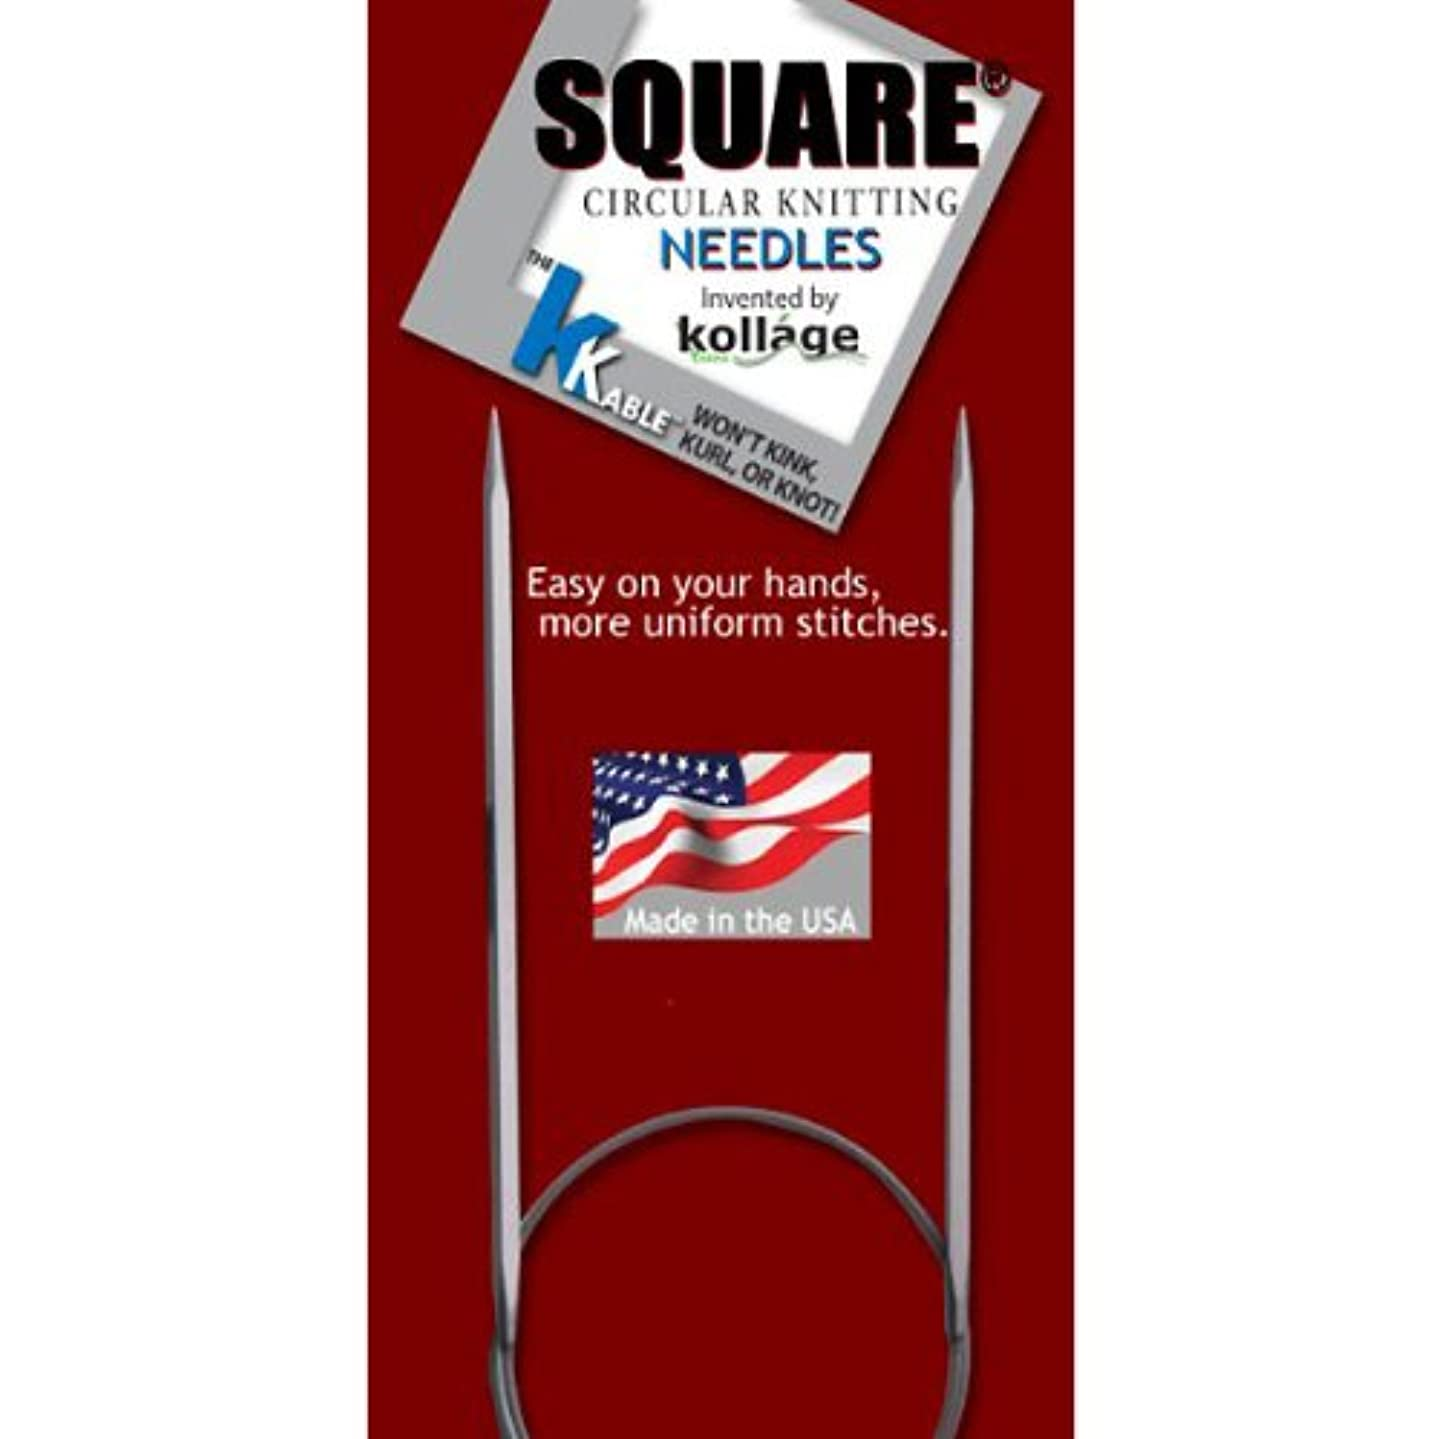 Kollage Square Circular 16-inch (41cm) Knitting Needle Soft Cable; Size US 11 (8.0mm)